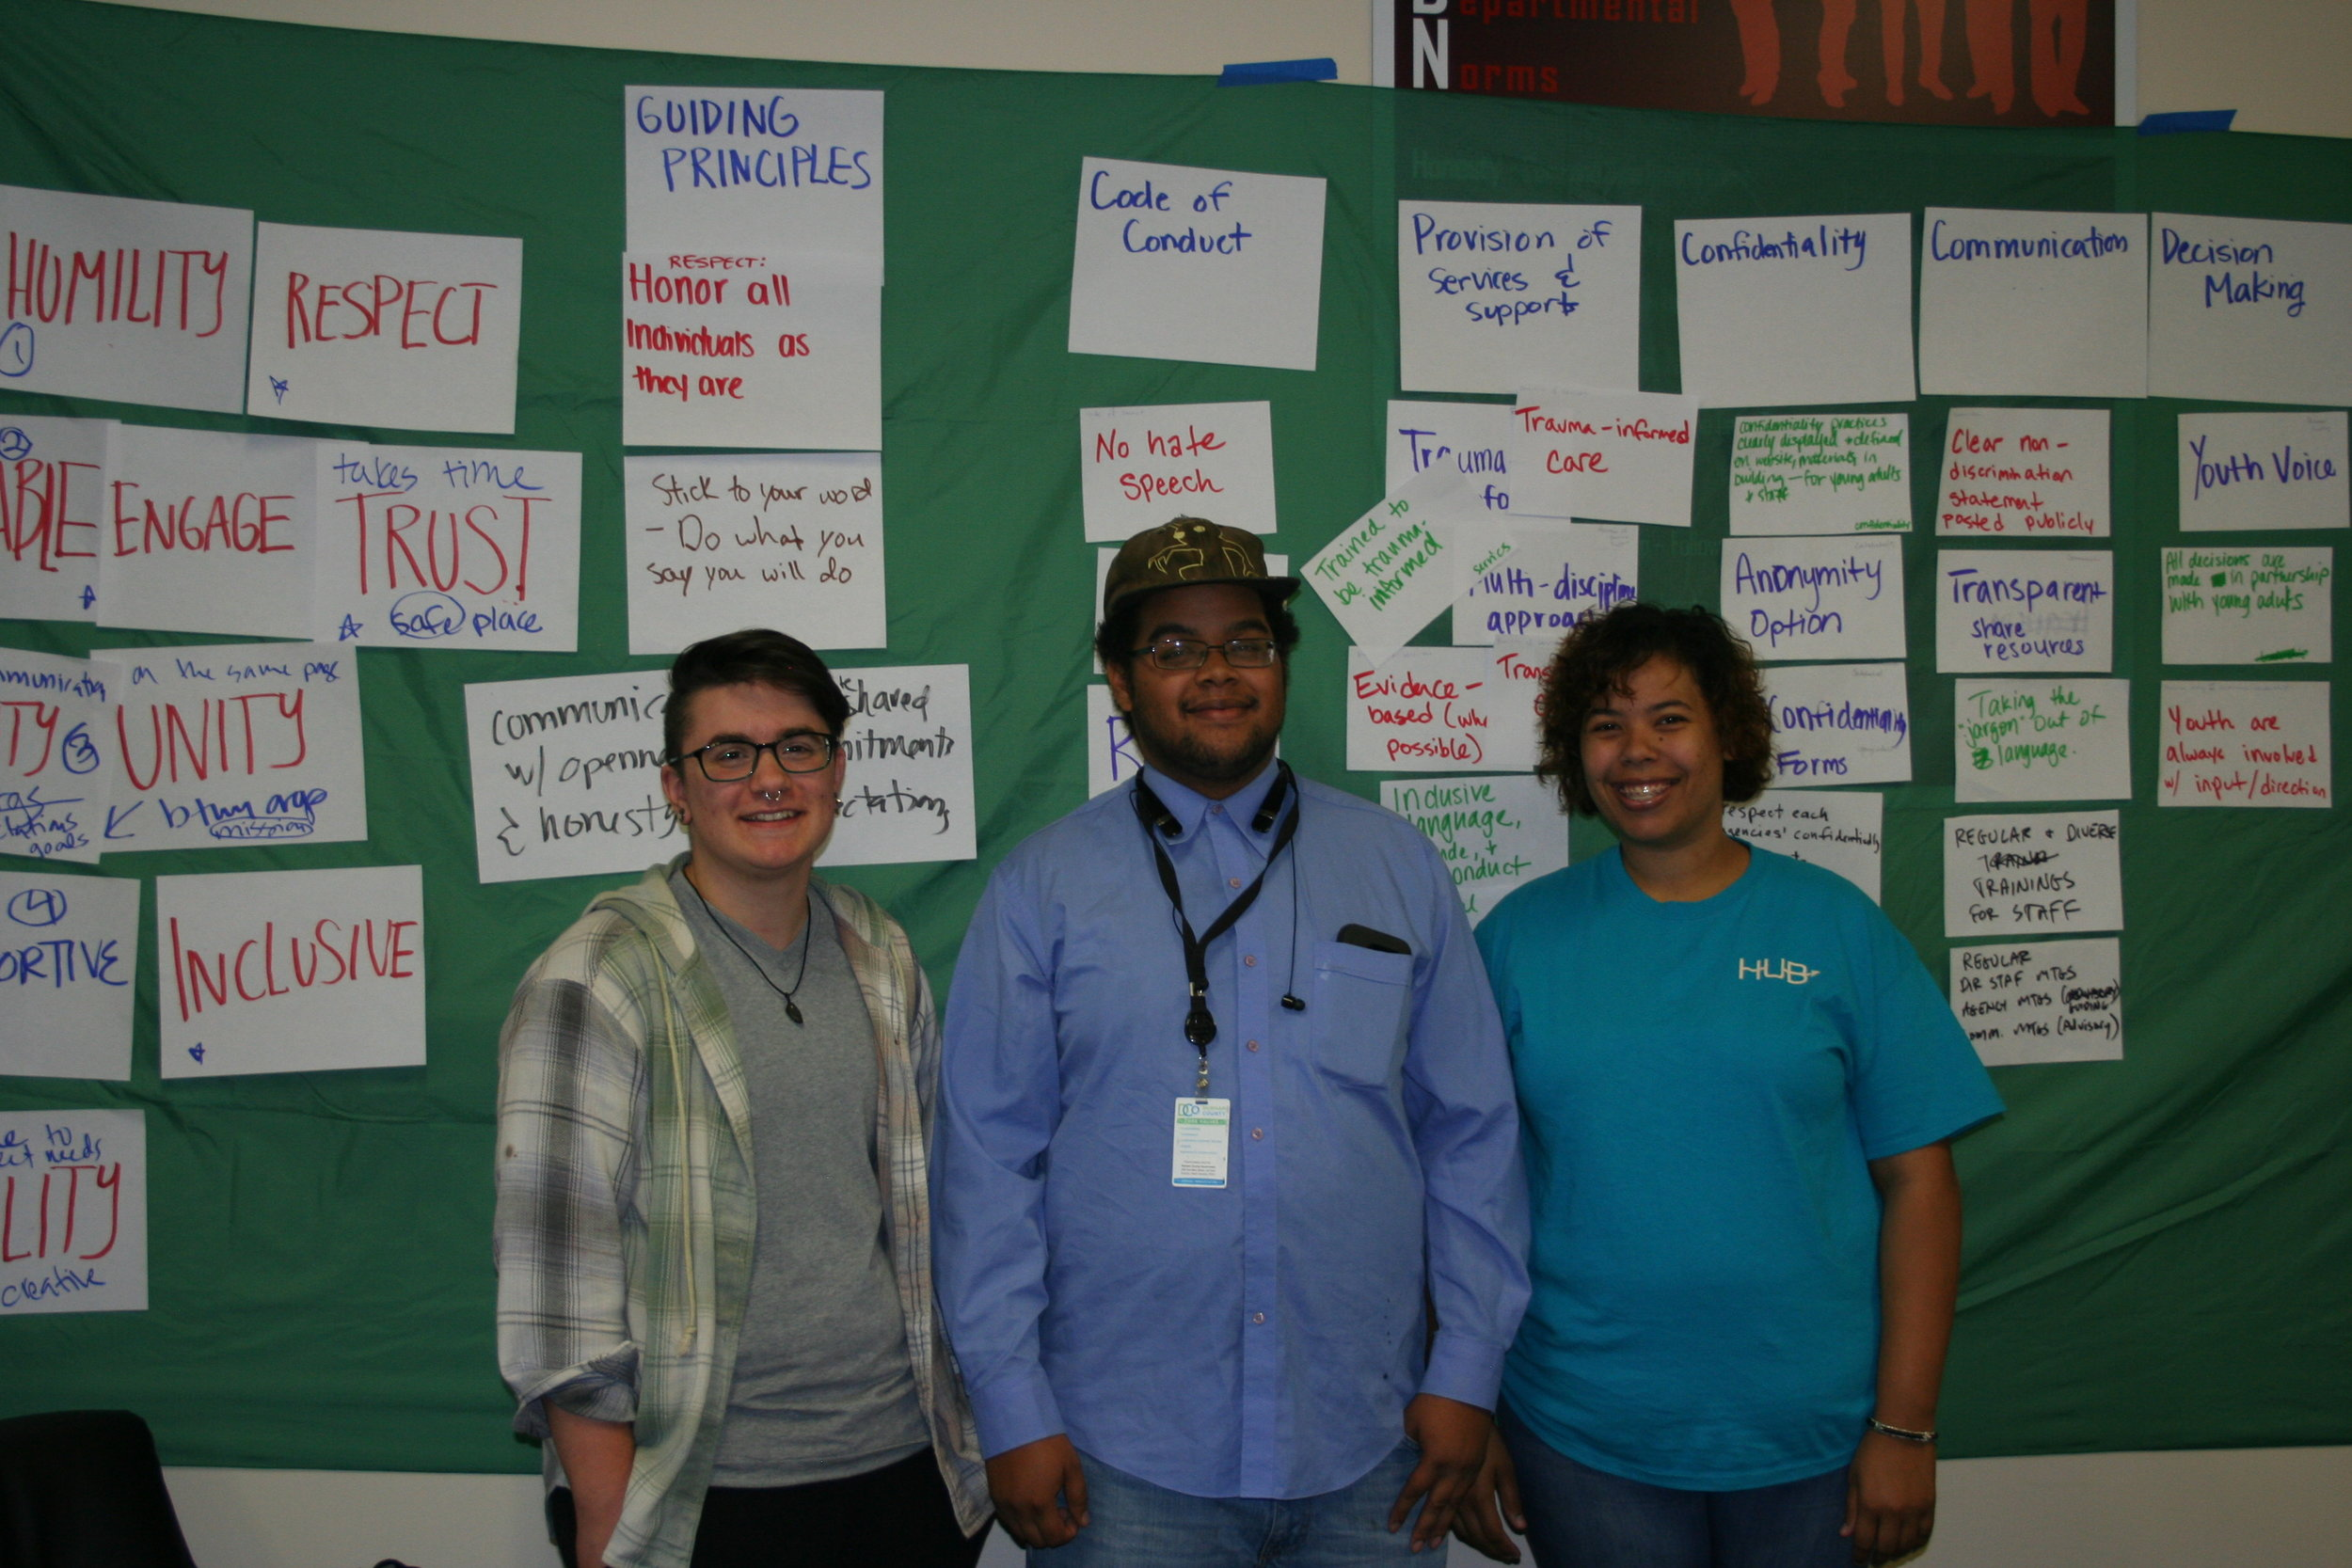 Members of The HUB community gathered over the winter in a series of planning retreats to map out how partners, young adults, and community members would work together to bring the vision of the Young Adult Resource Center to life.